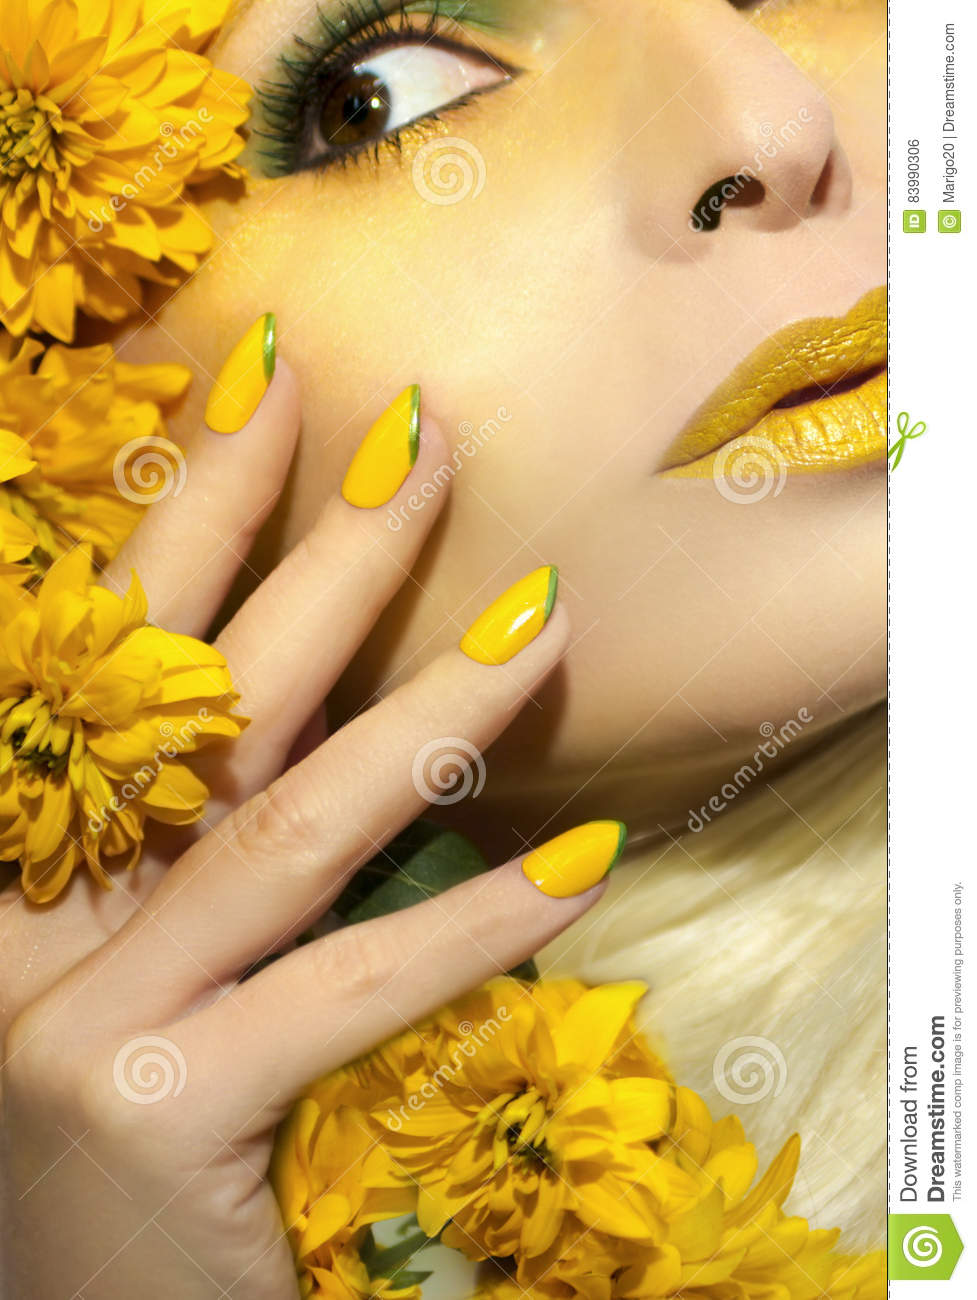 Yellow makeup and manicure.